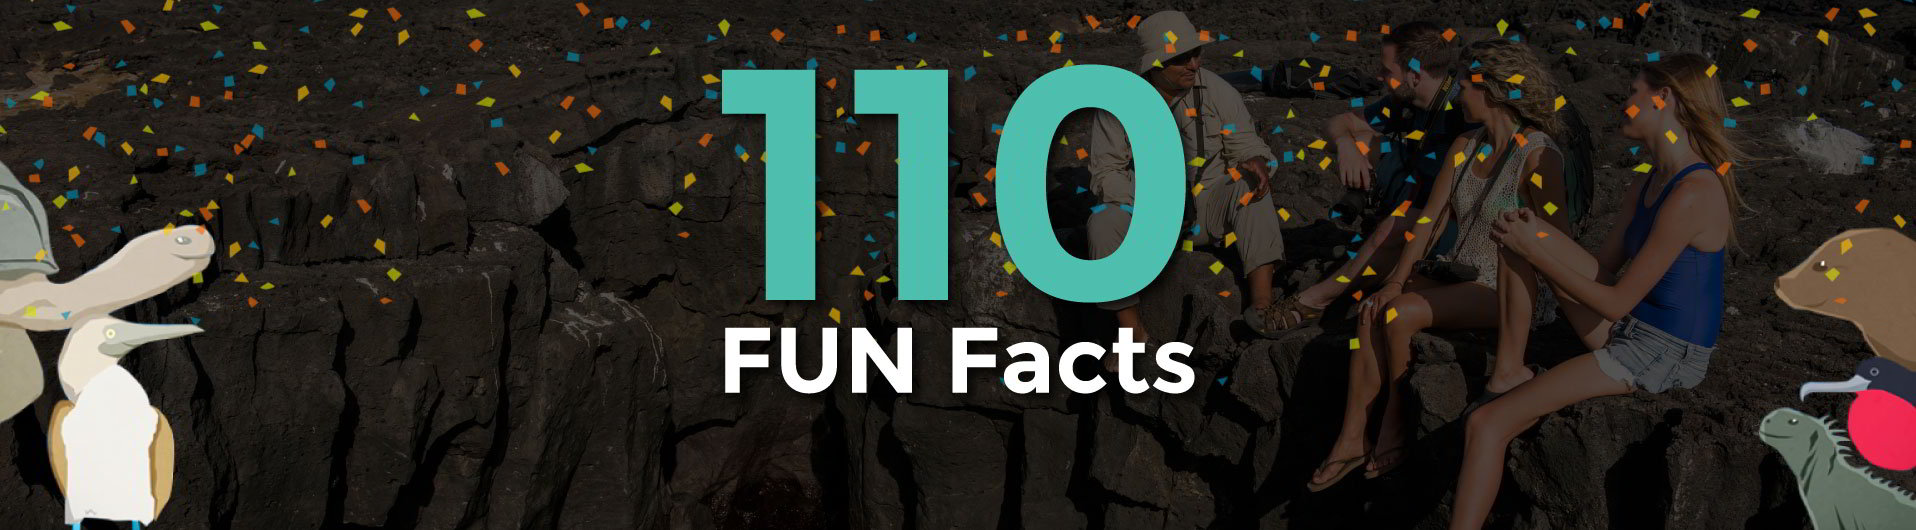 banner for blog section 110 Galapagos fun facts